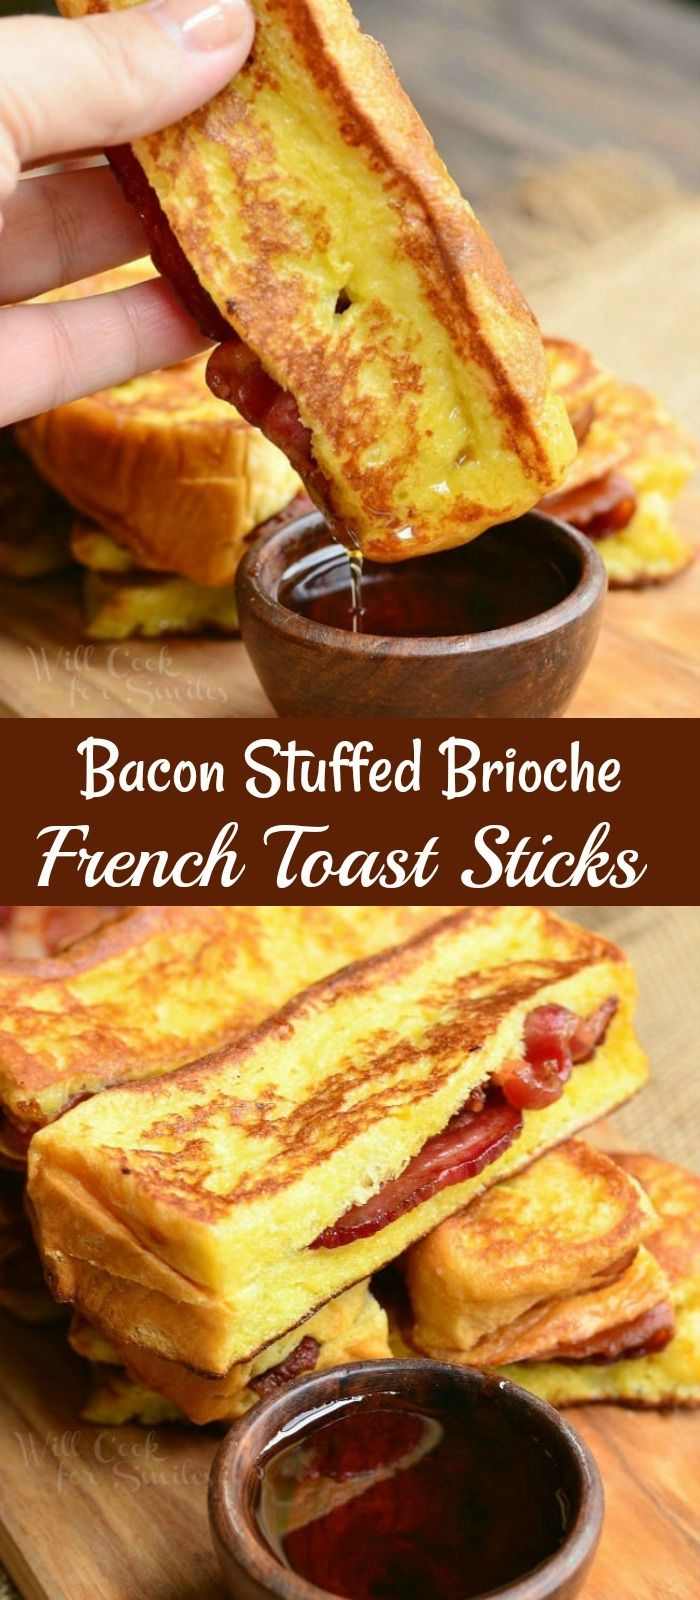 Photo of Bacon Stuffed Broiche French Toast Sticks